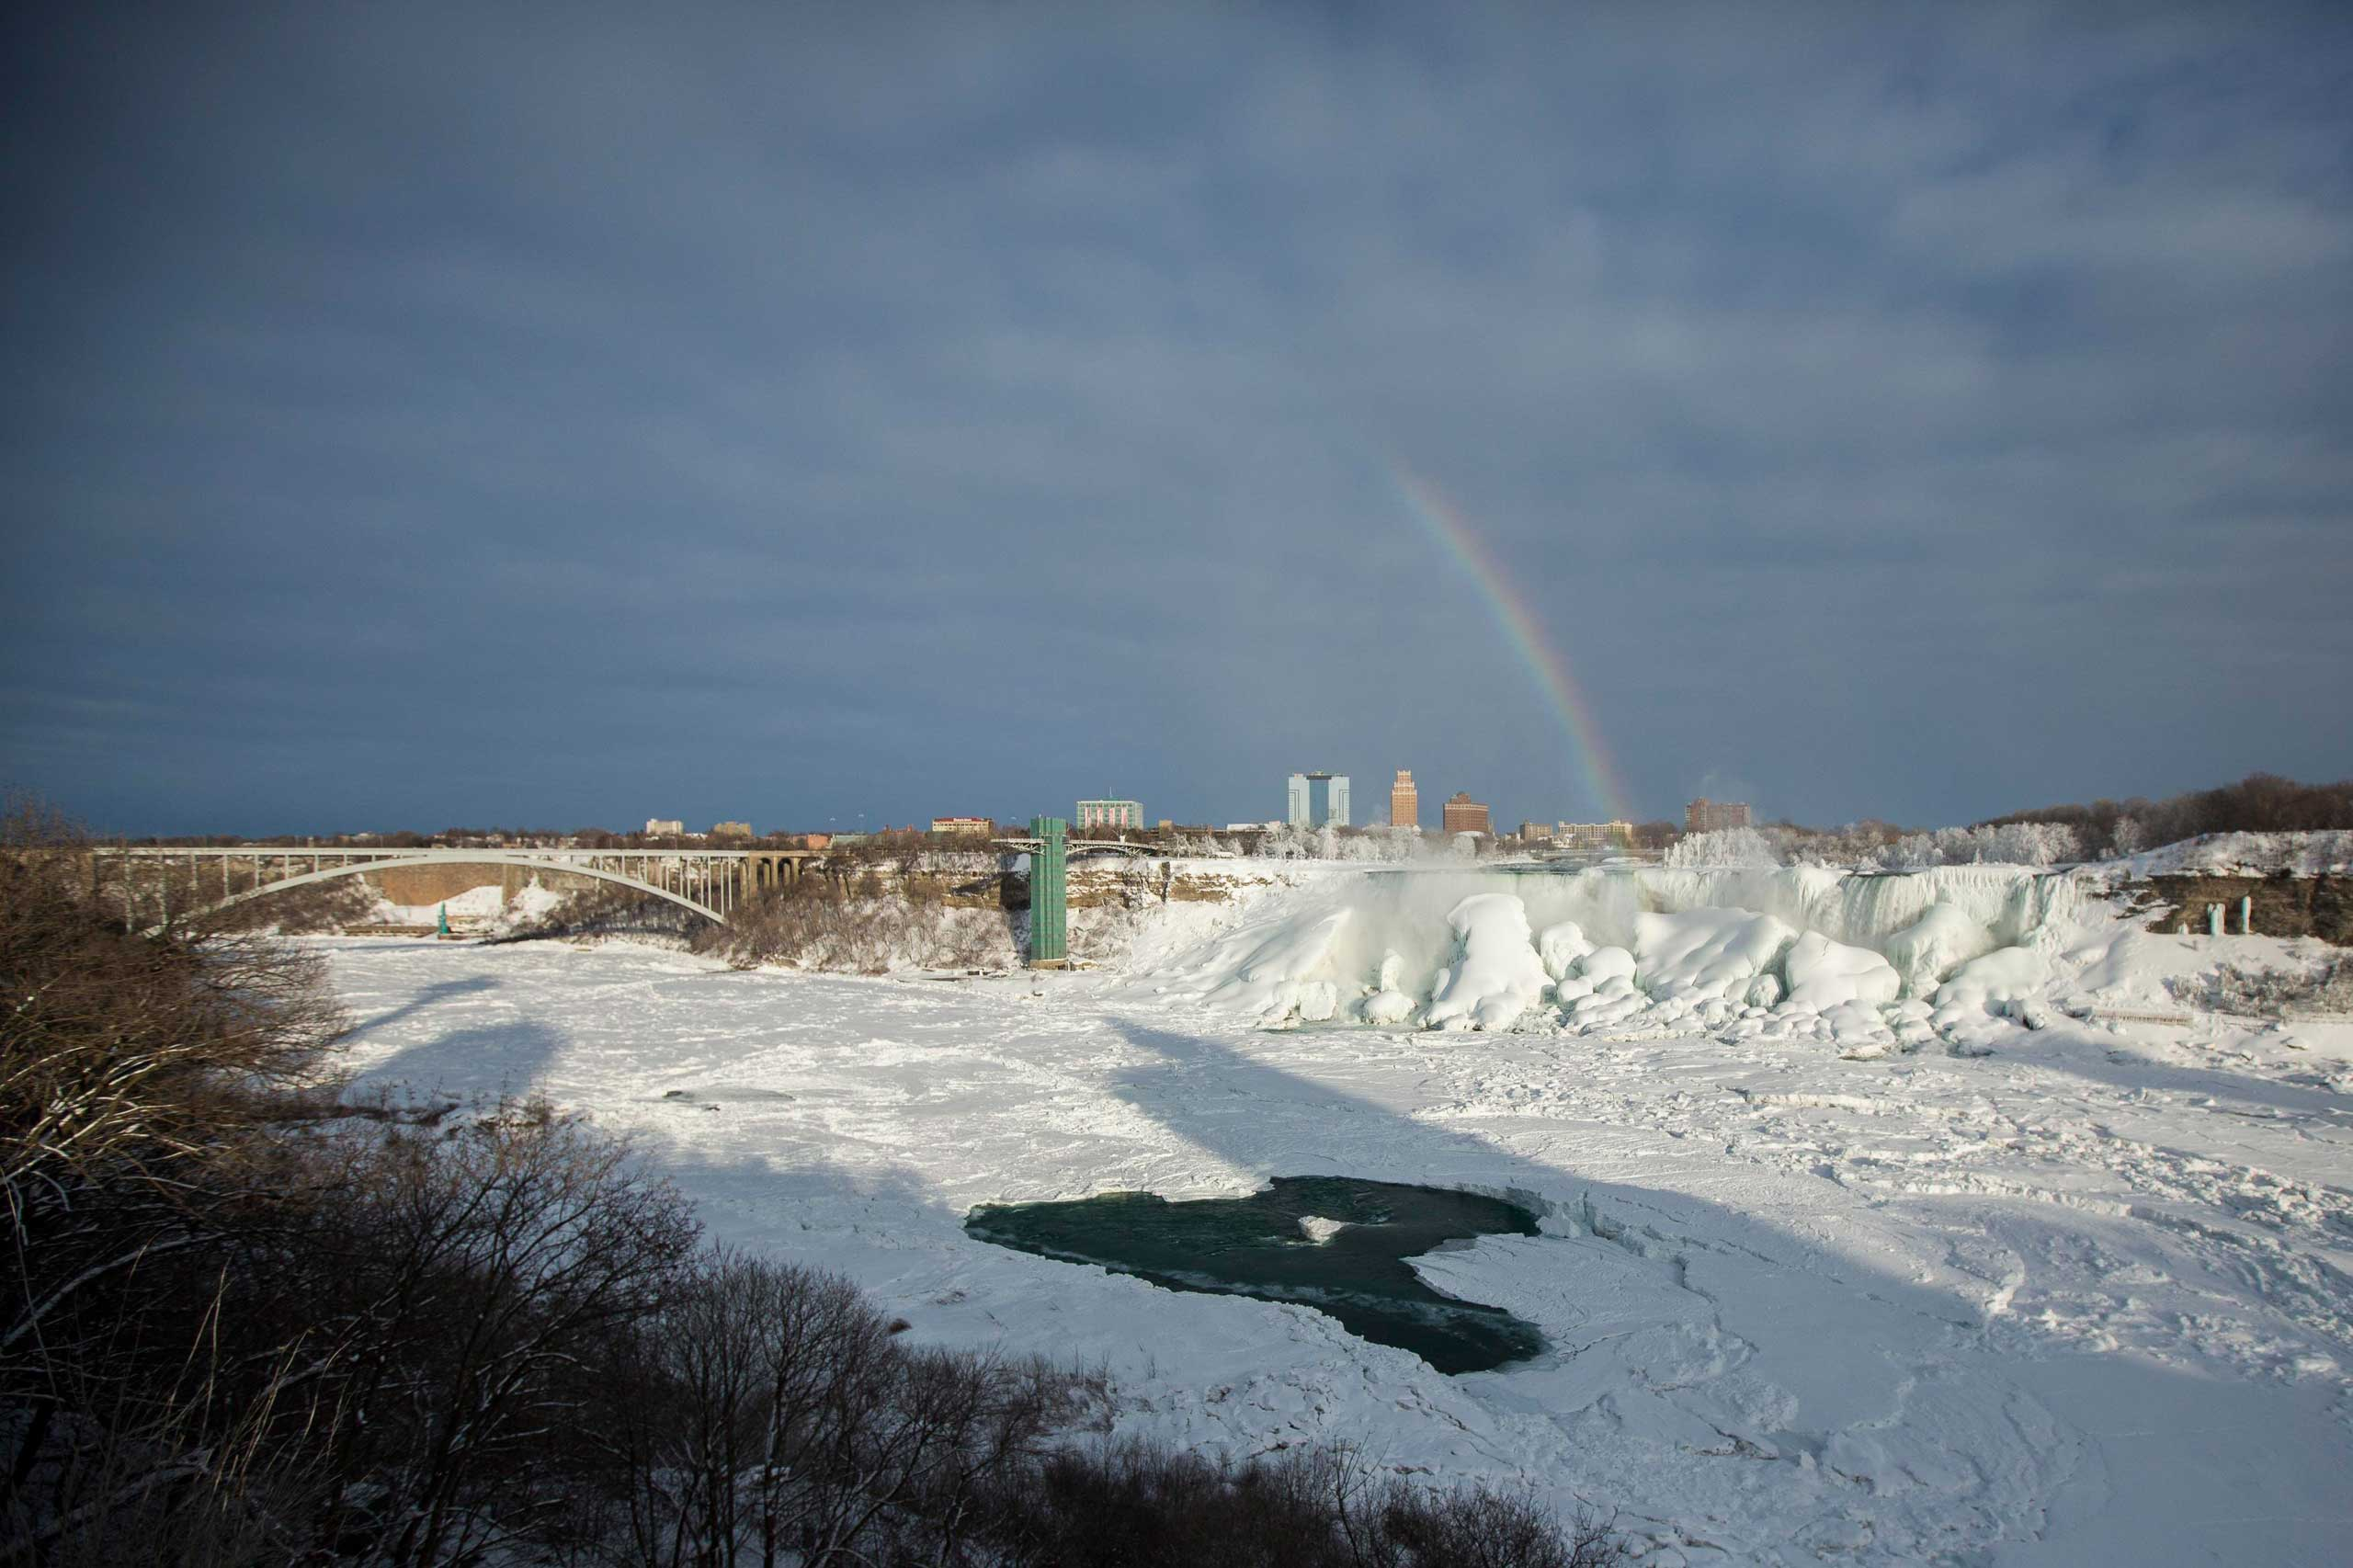 A rainbow appears over the partially frozen American Falls in sub freezing temperatures in Niagara Falls, Ontario, Canada, Feb. 17, 2015.